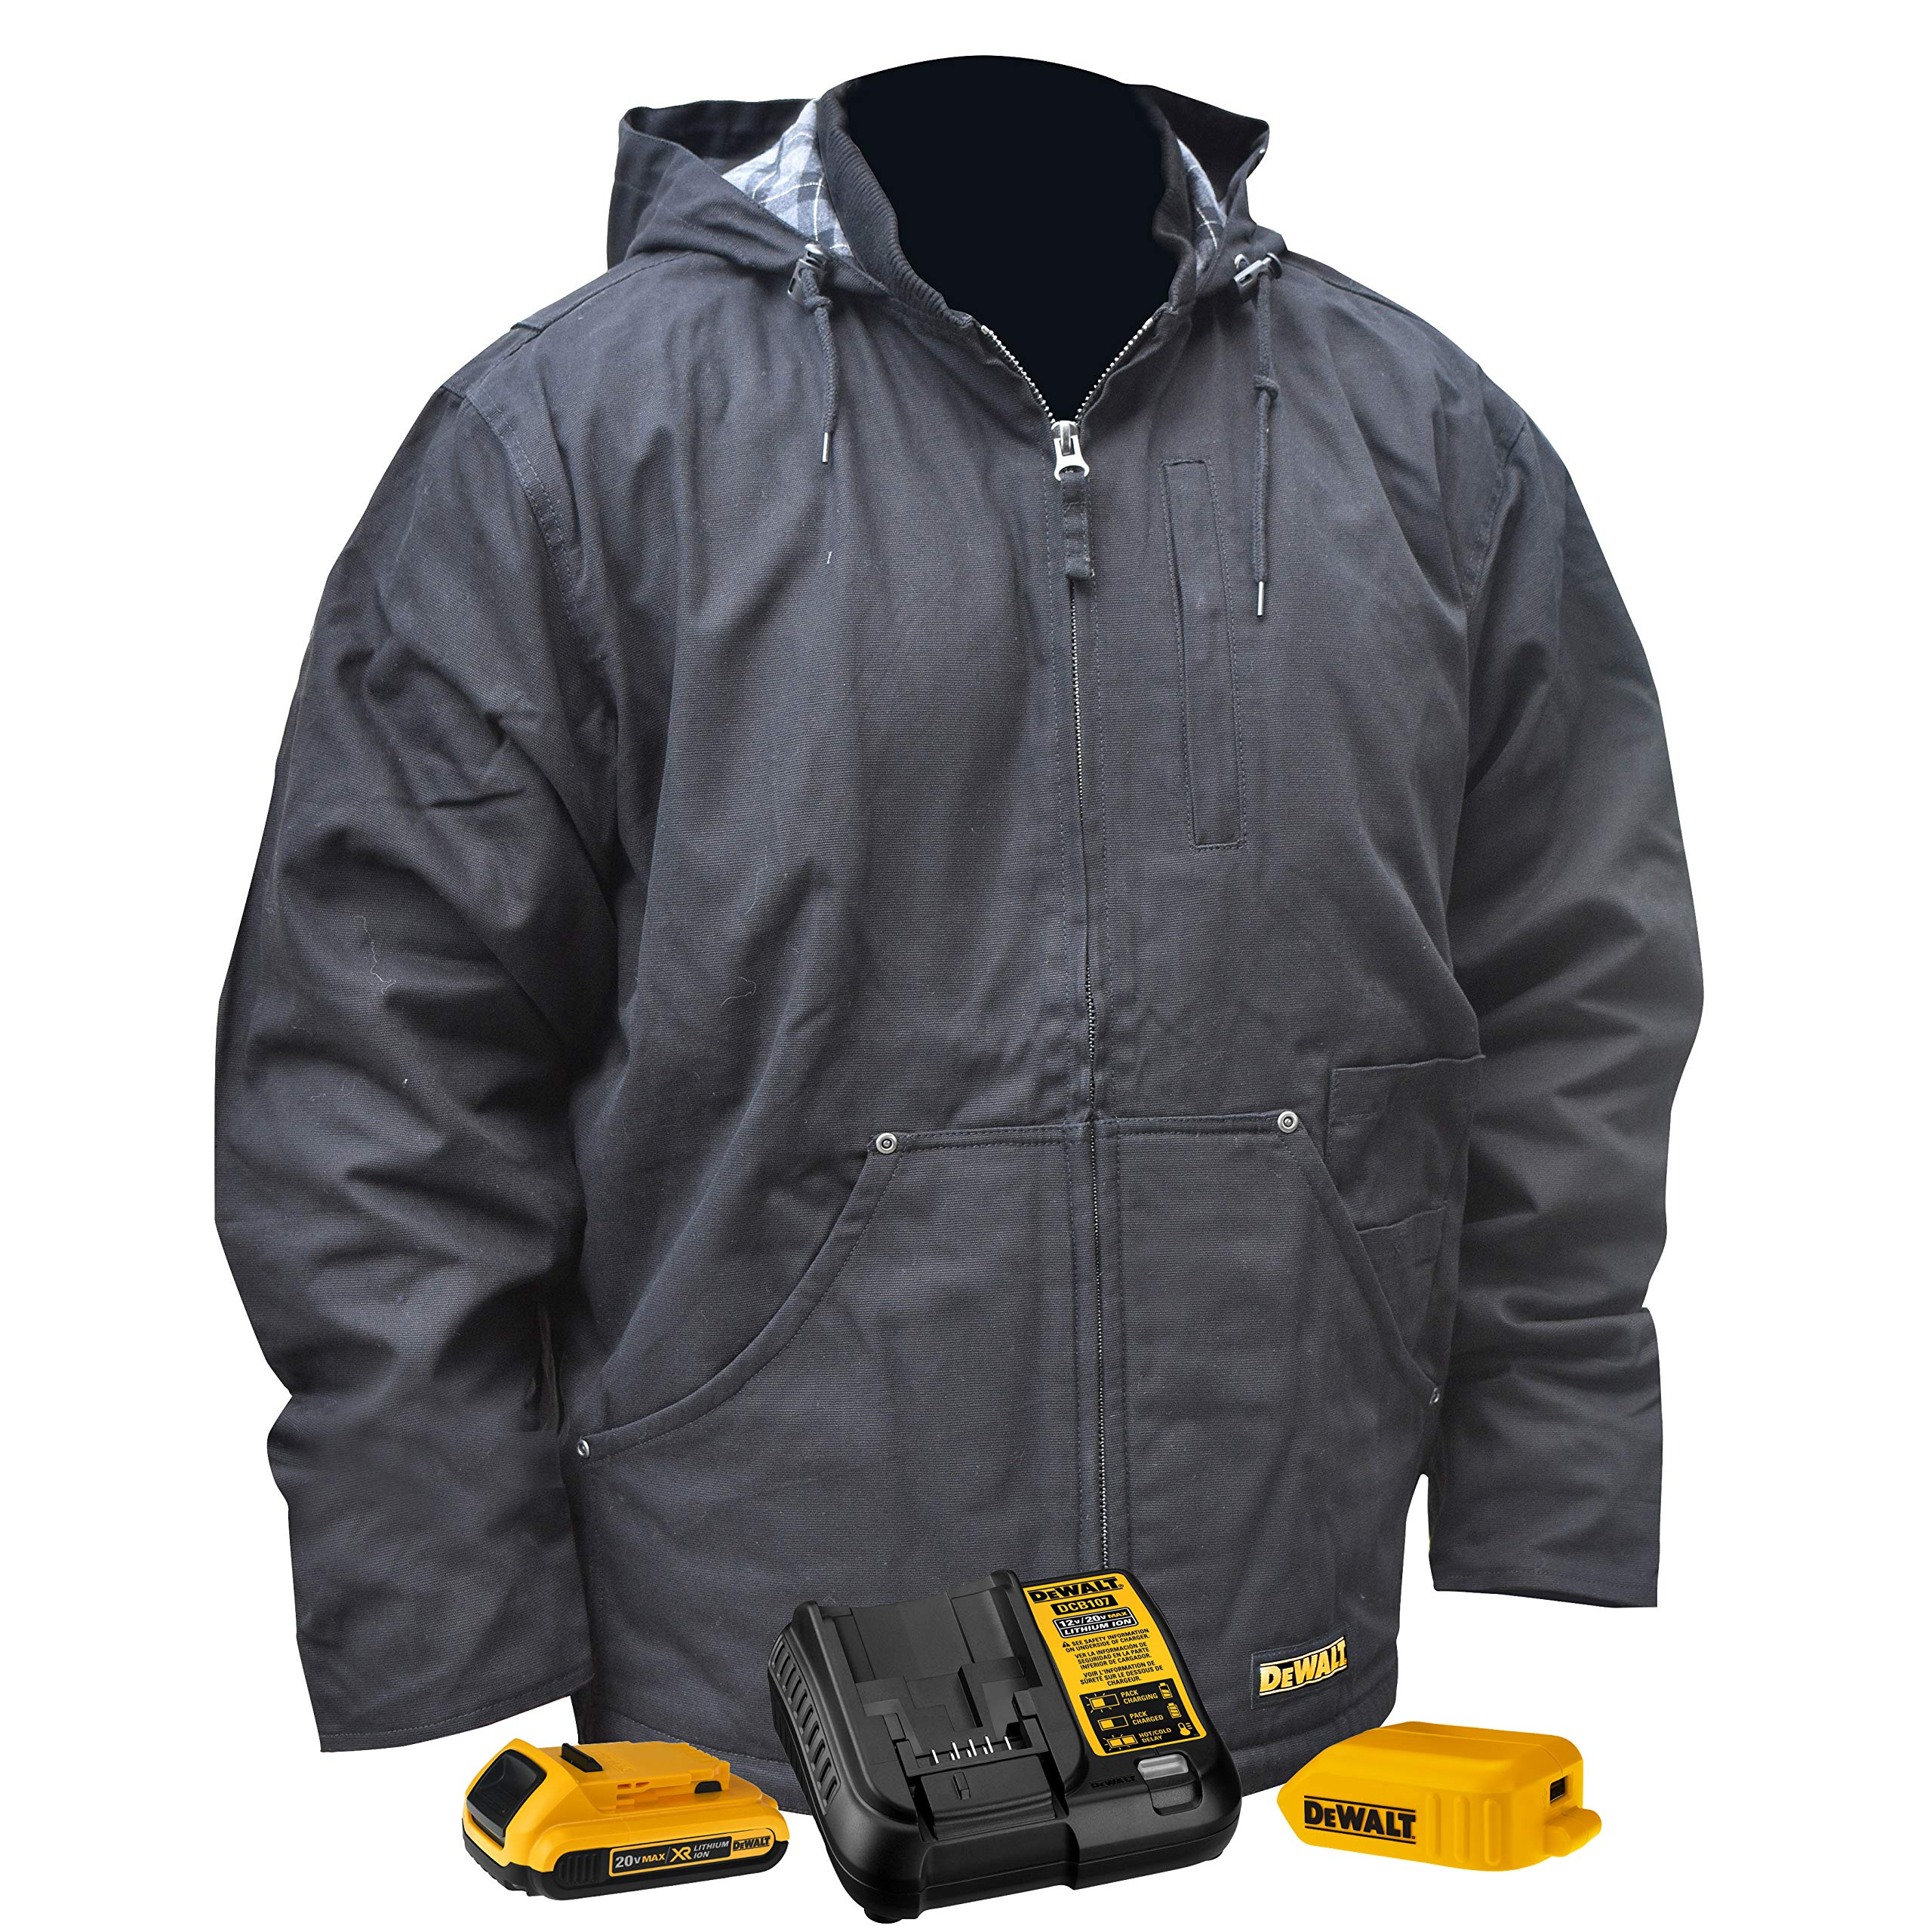 DEWALT DCHJ076ABD1-M Heated Heavy Duty Work COAT, M, Black by DEWALT (Image #1)